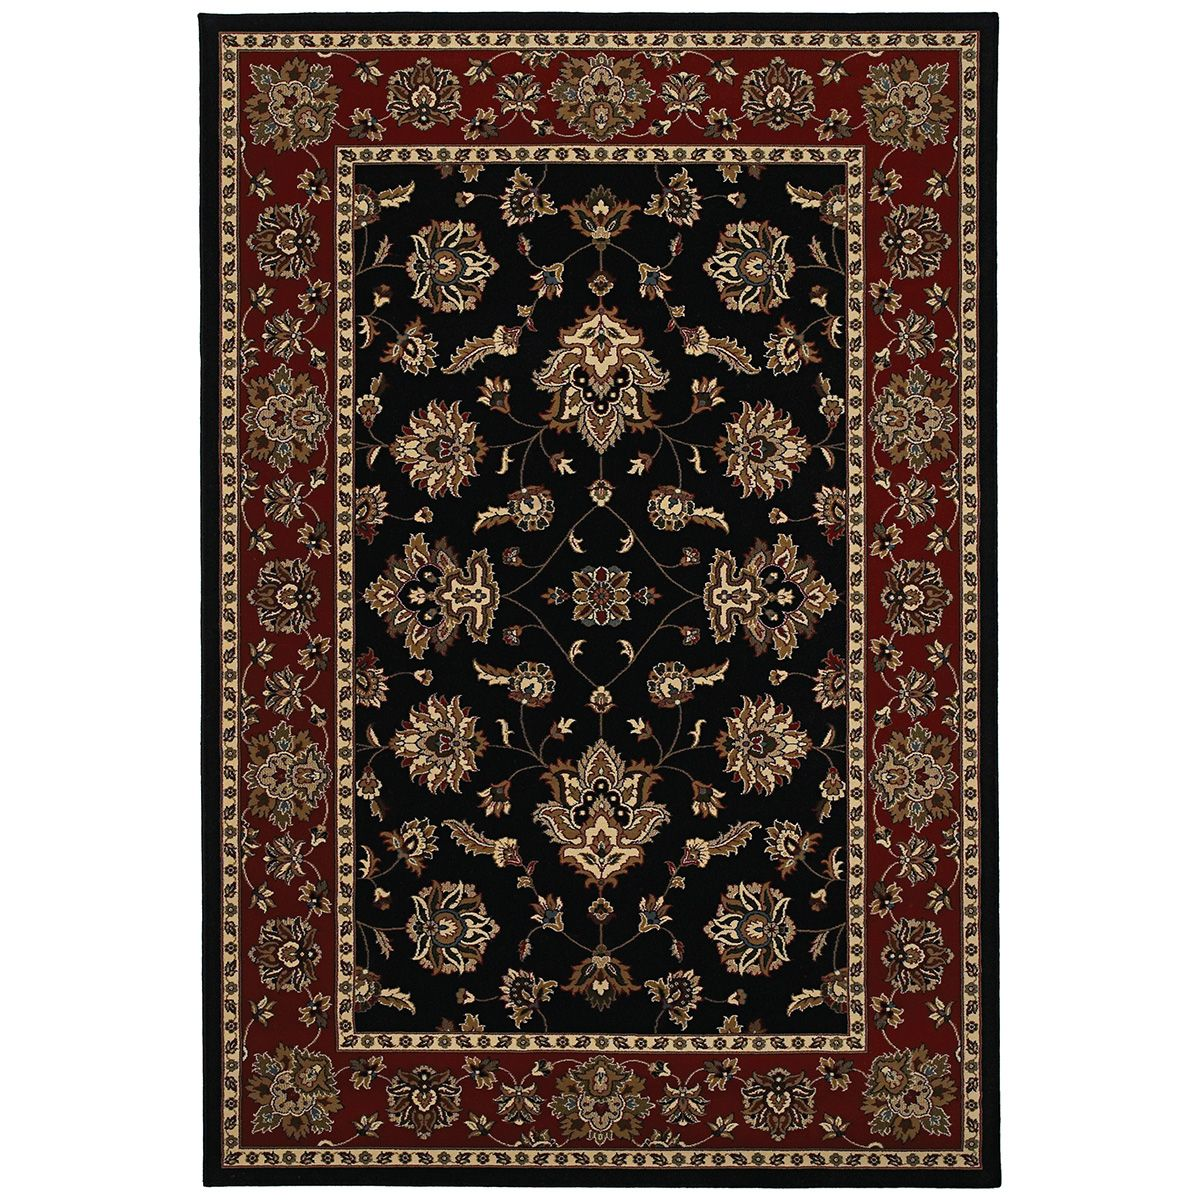 The Dump Furniture Ariana 623 M Home Decor Rugs Red